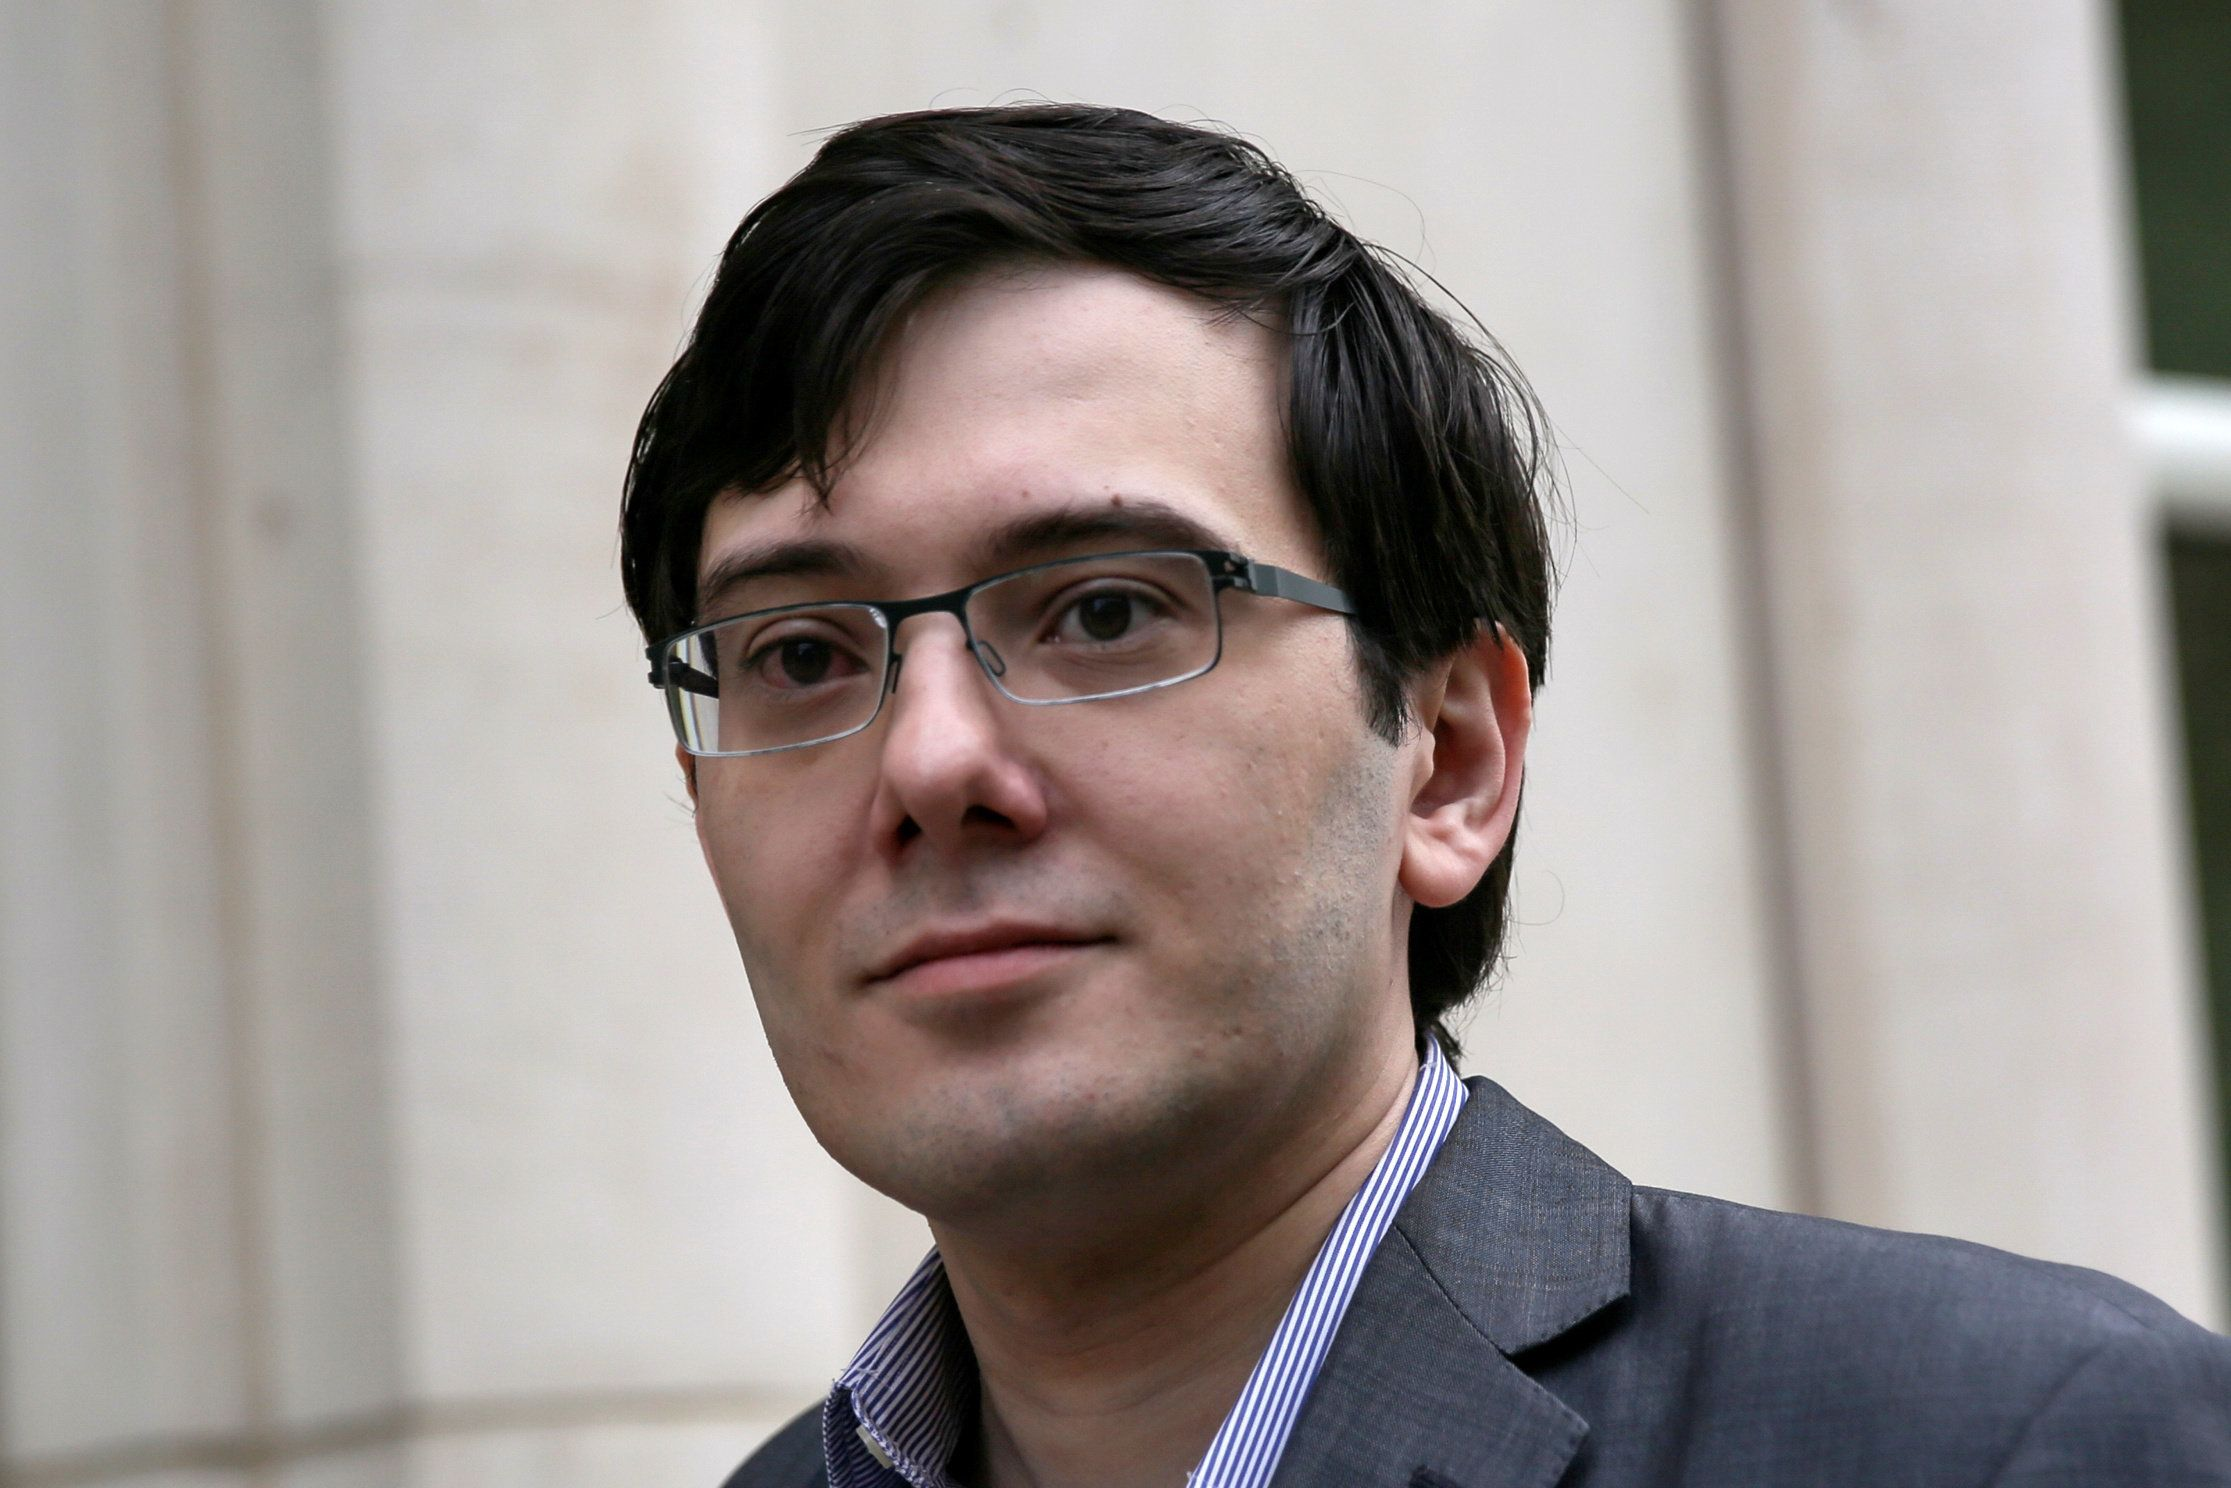 Shkreli is scheduled to be sentenced for securities fraud later this week.